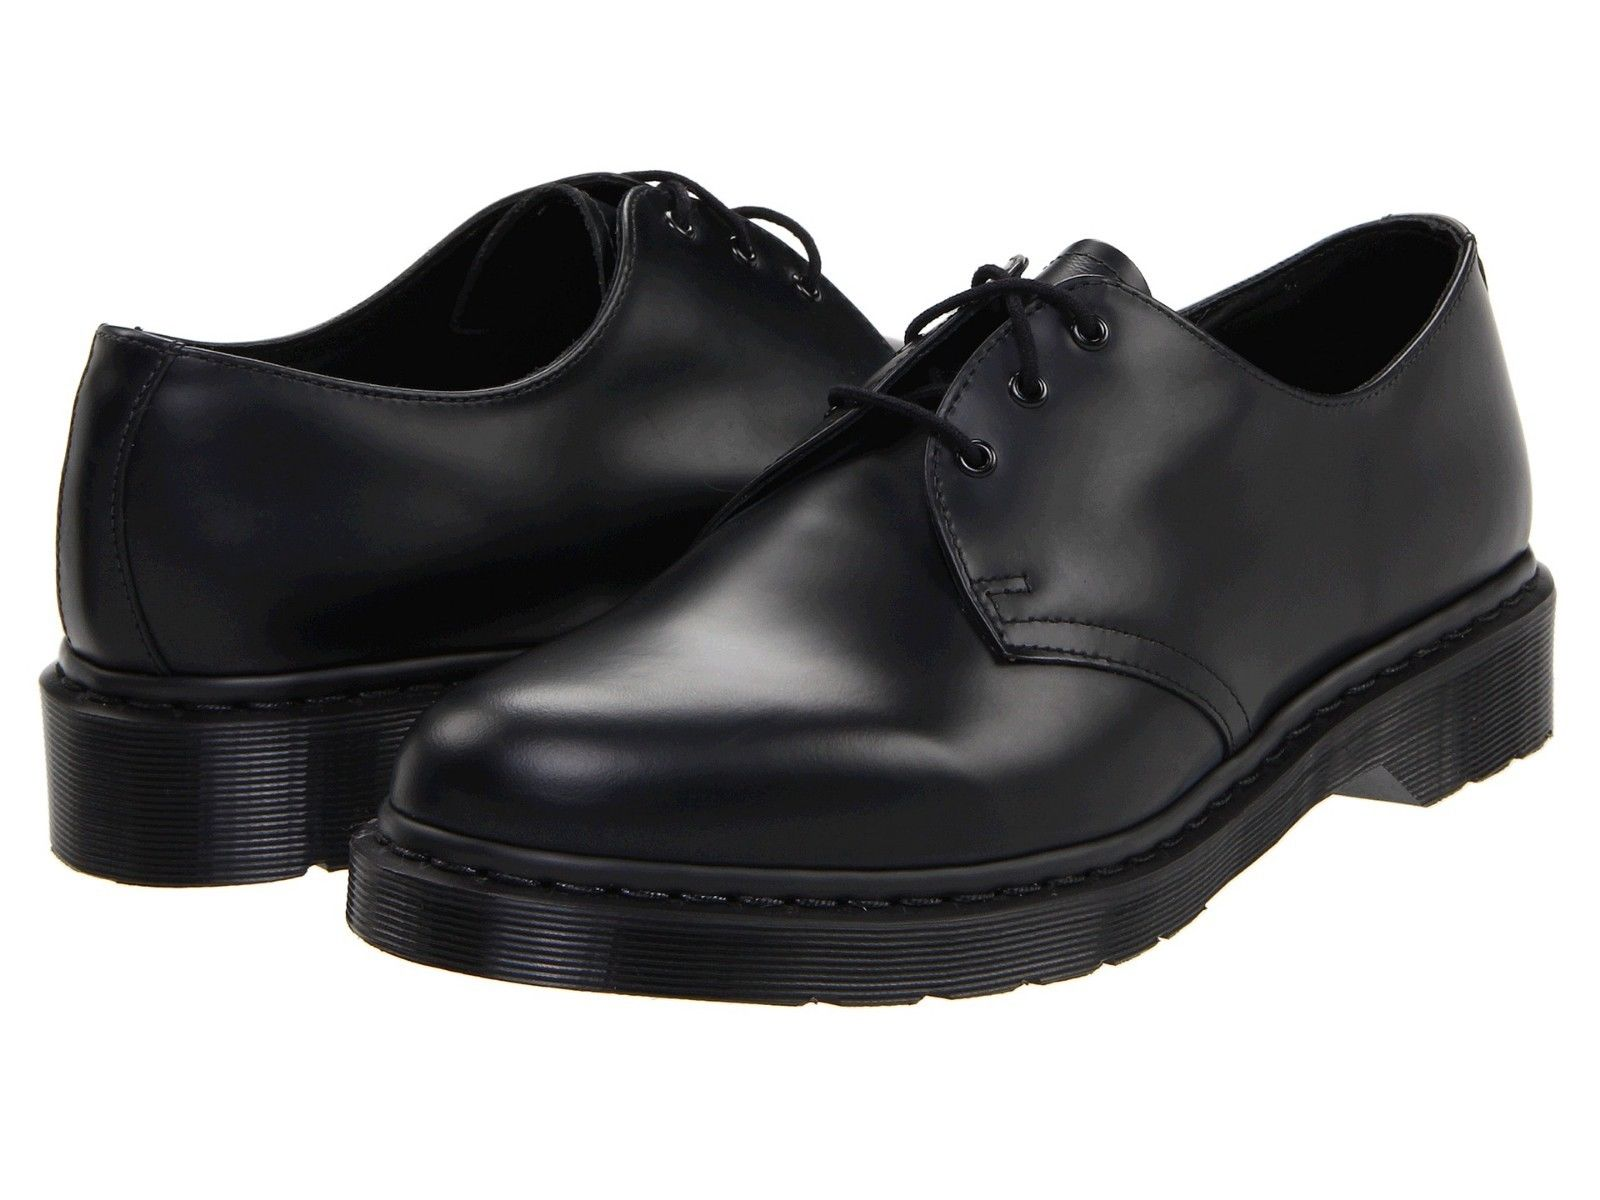 Dr. Martens 1461 Mono Men's Shoes 3 Eye Leather Oxfords 14345001 Black by Dr. Martens